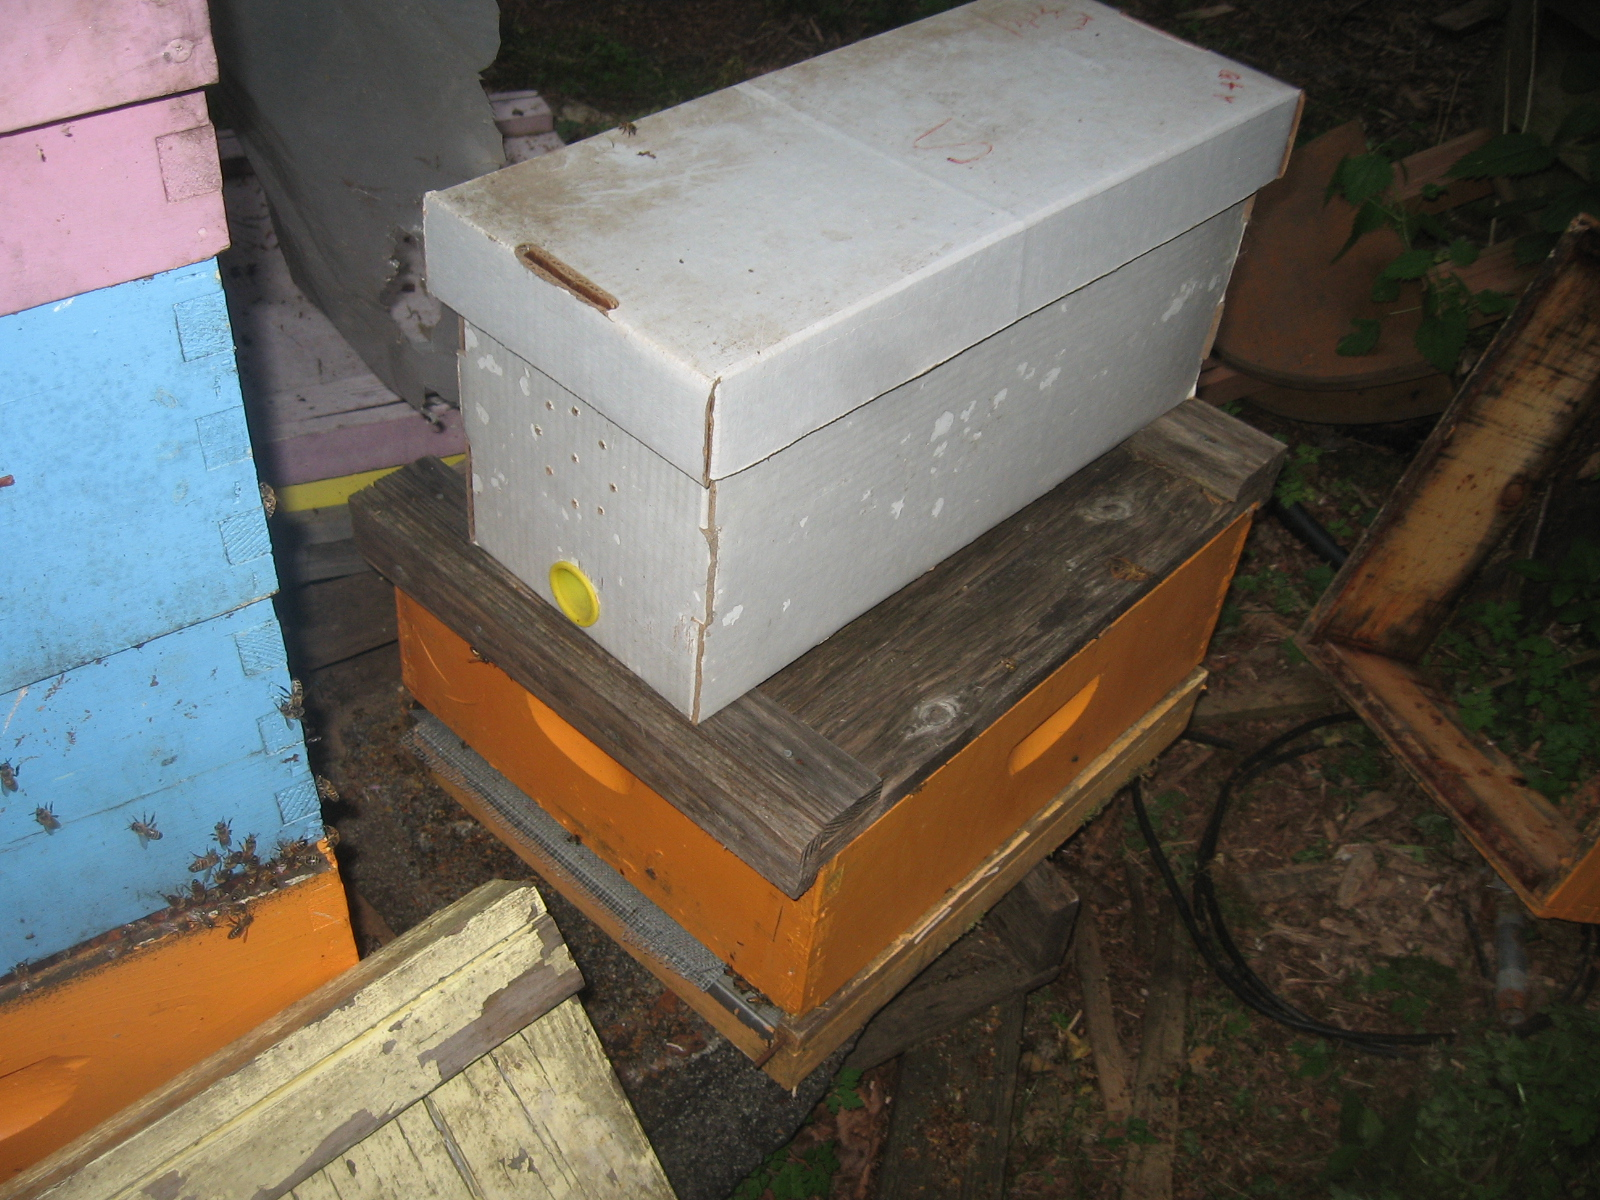 Boxed bees await a new location